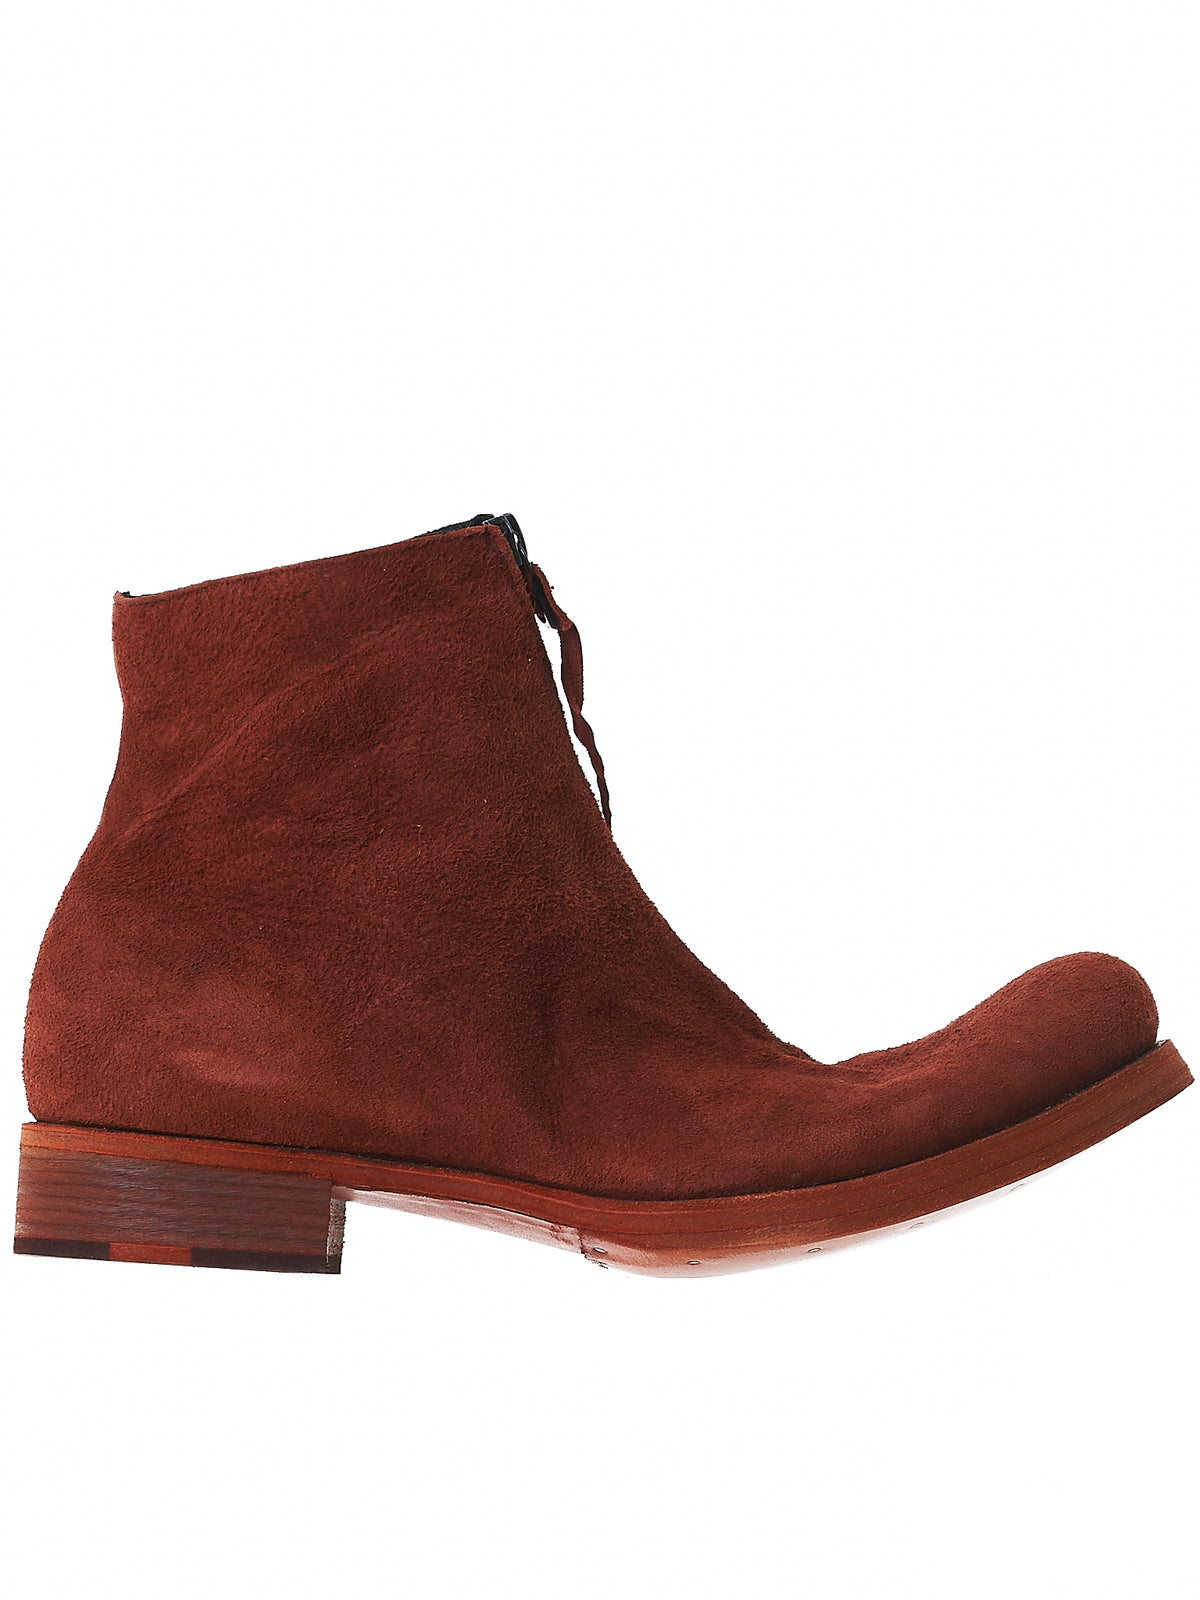 Zipped Ankle Boots (S1G2Z CER.R 1.1 RED 3)